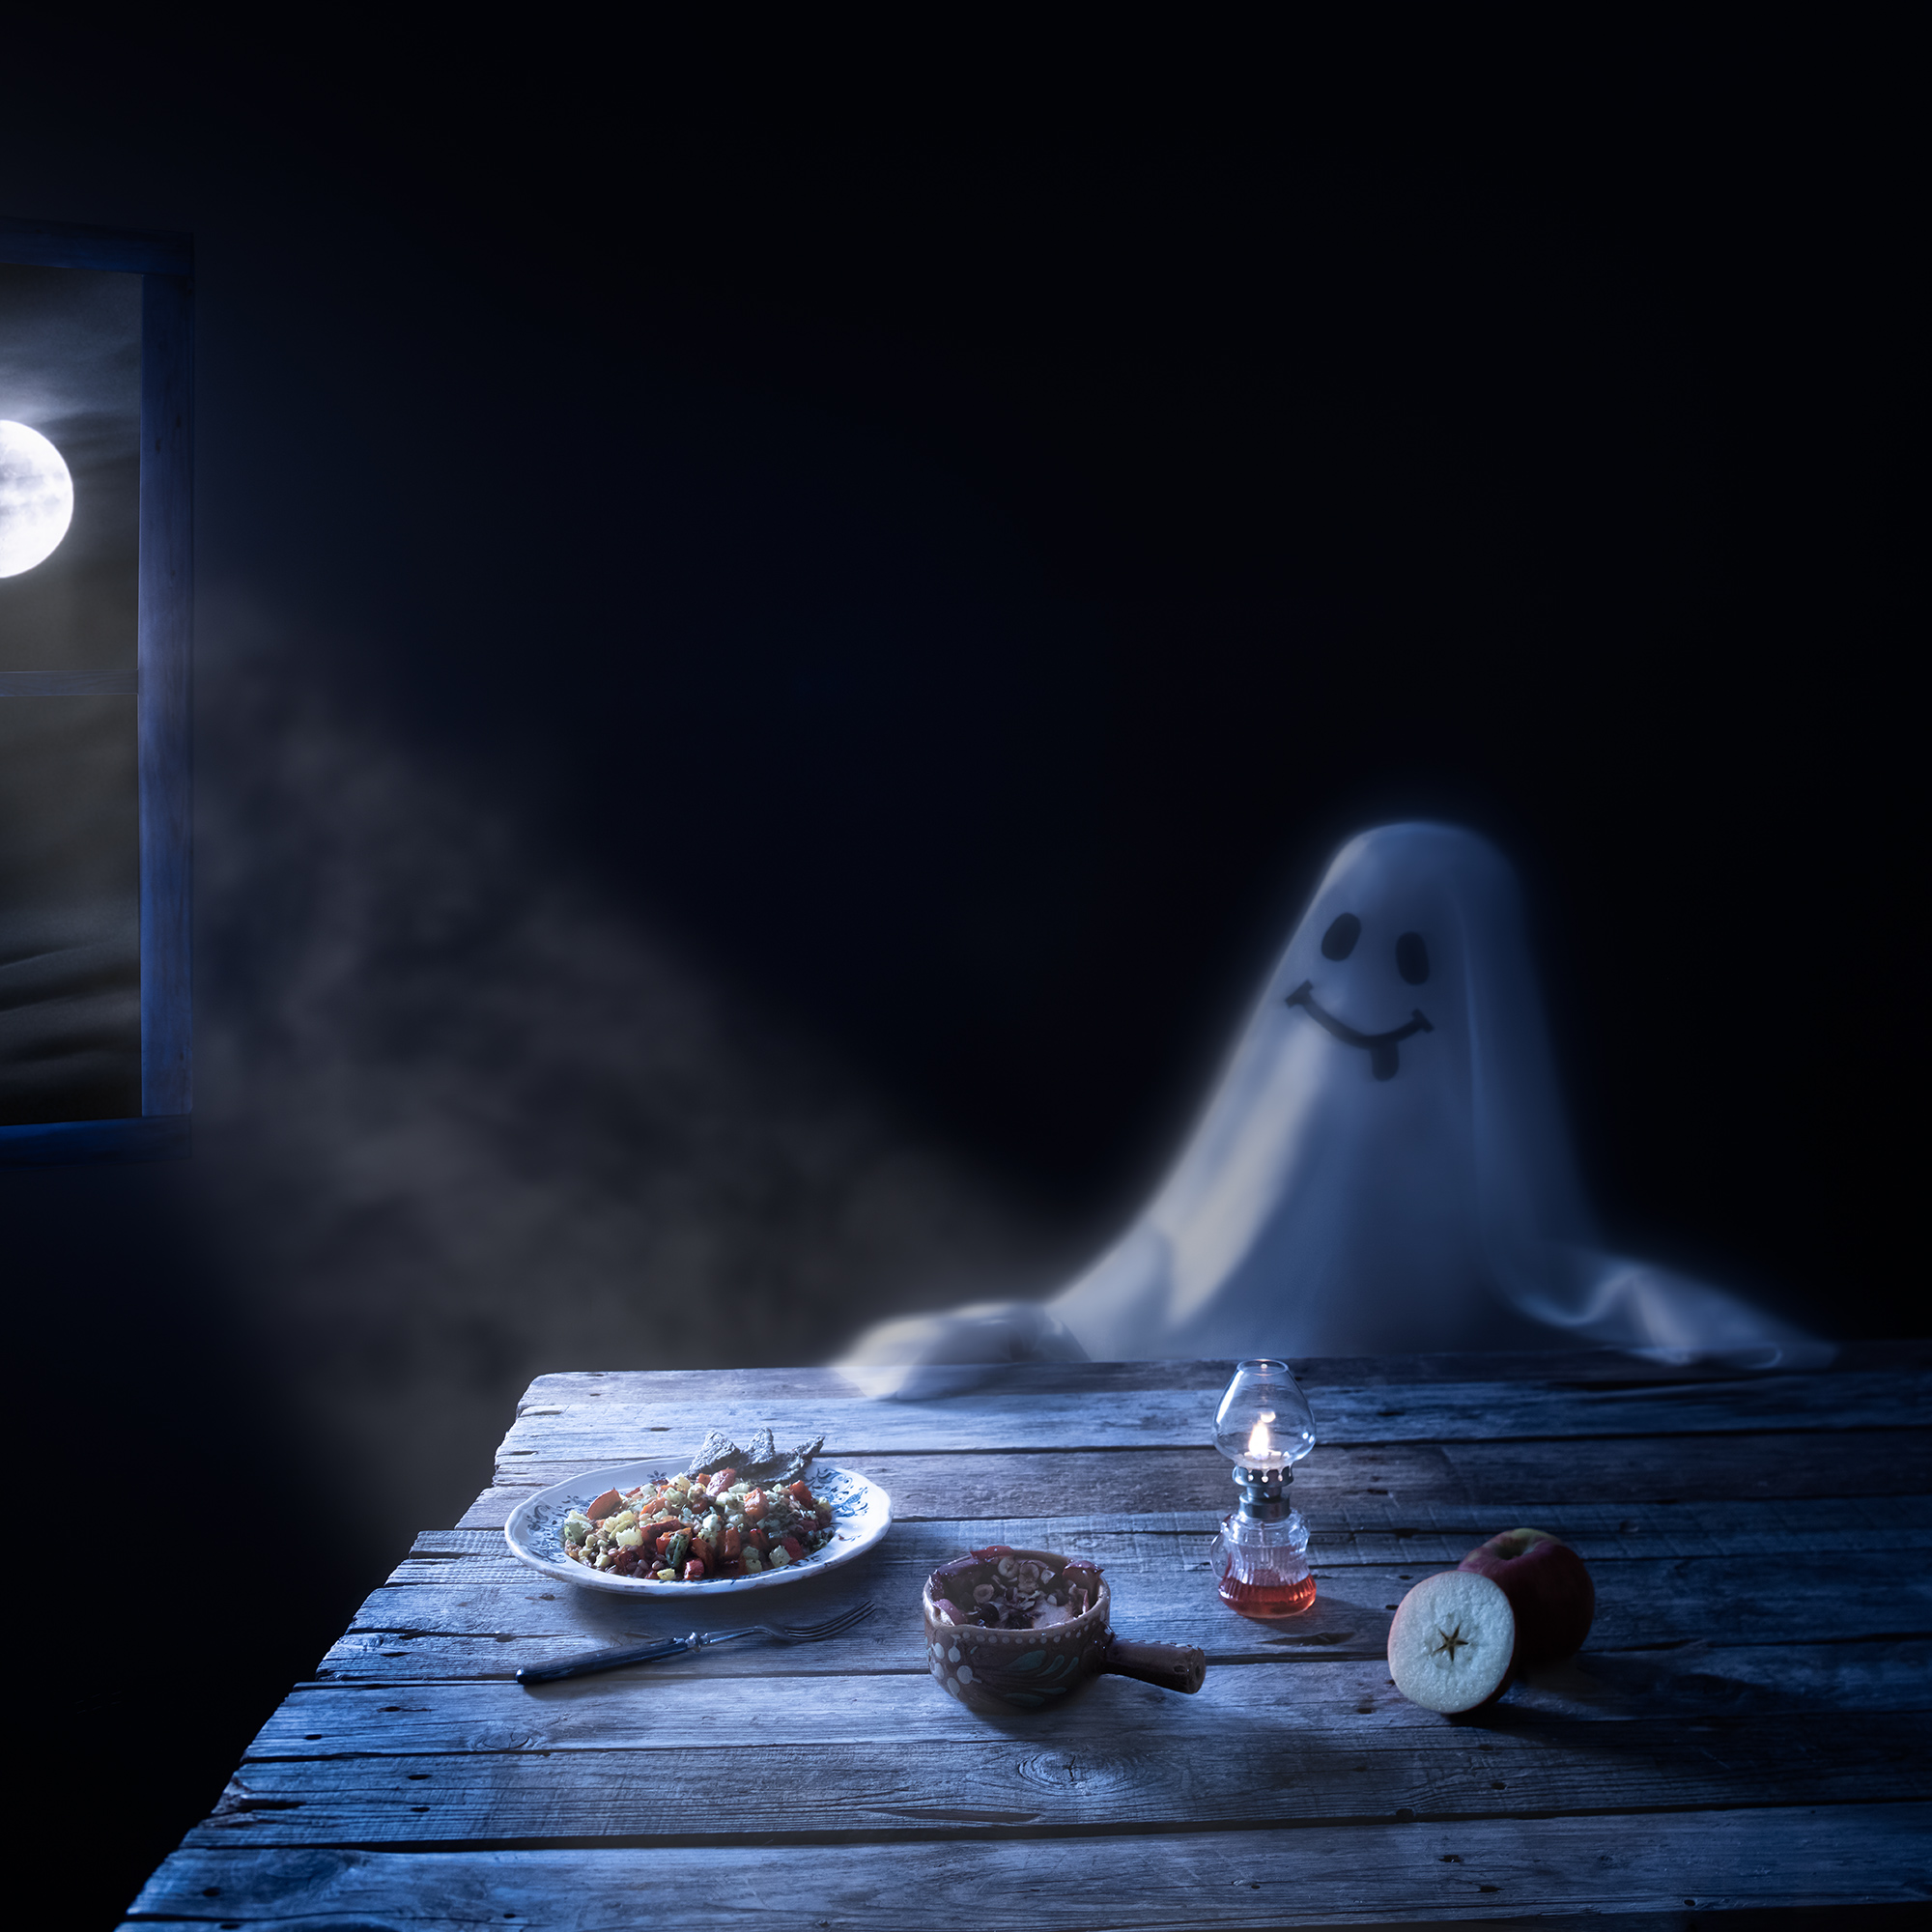 A smiling ghost is seen sitting by a table. A plate filled with autumn salad with cavolo nero is set and the moon is shining through a window.